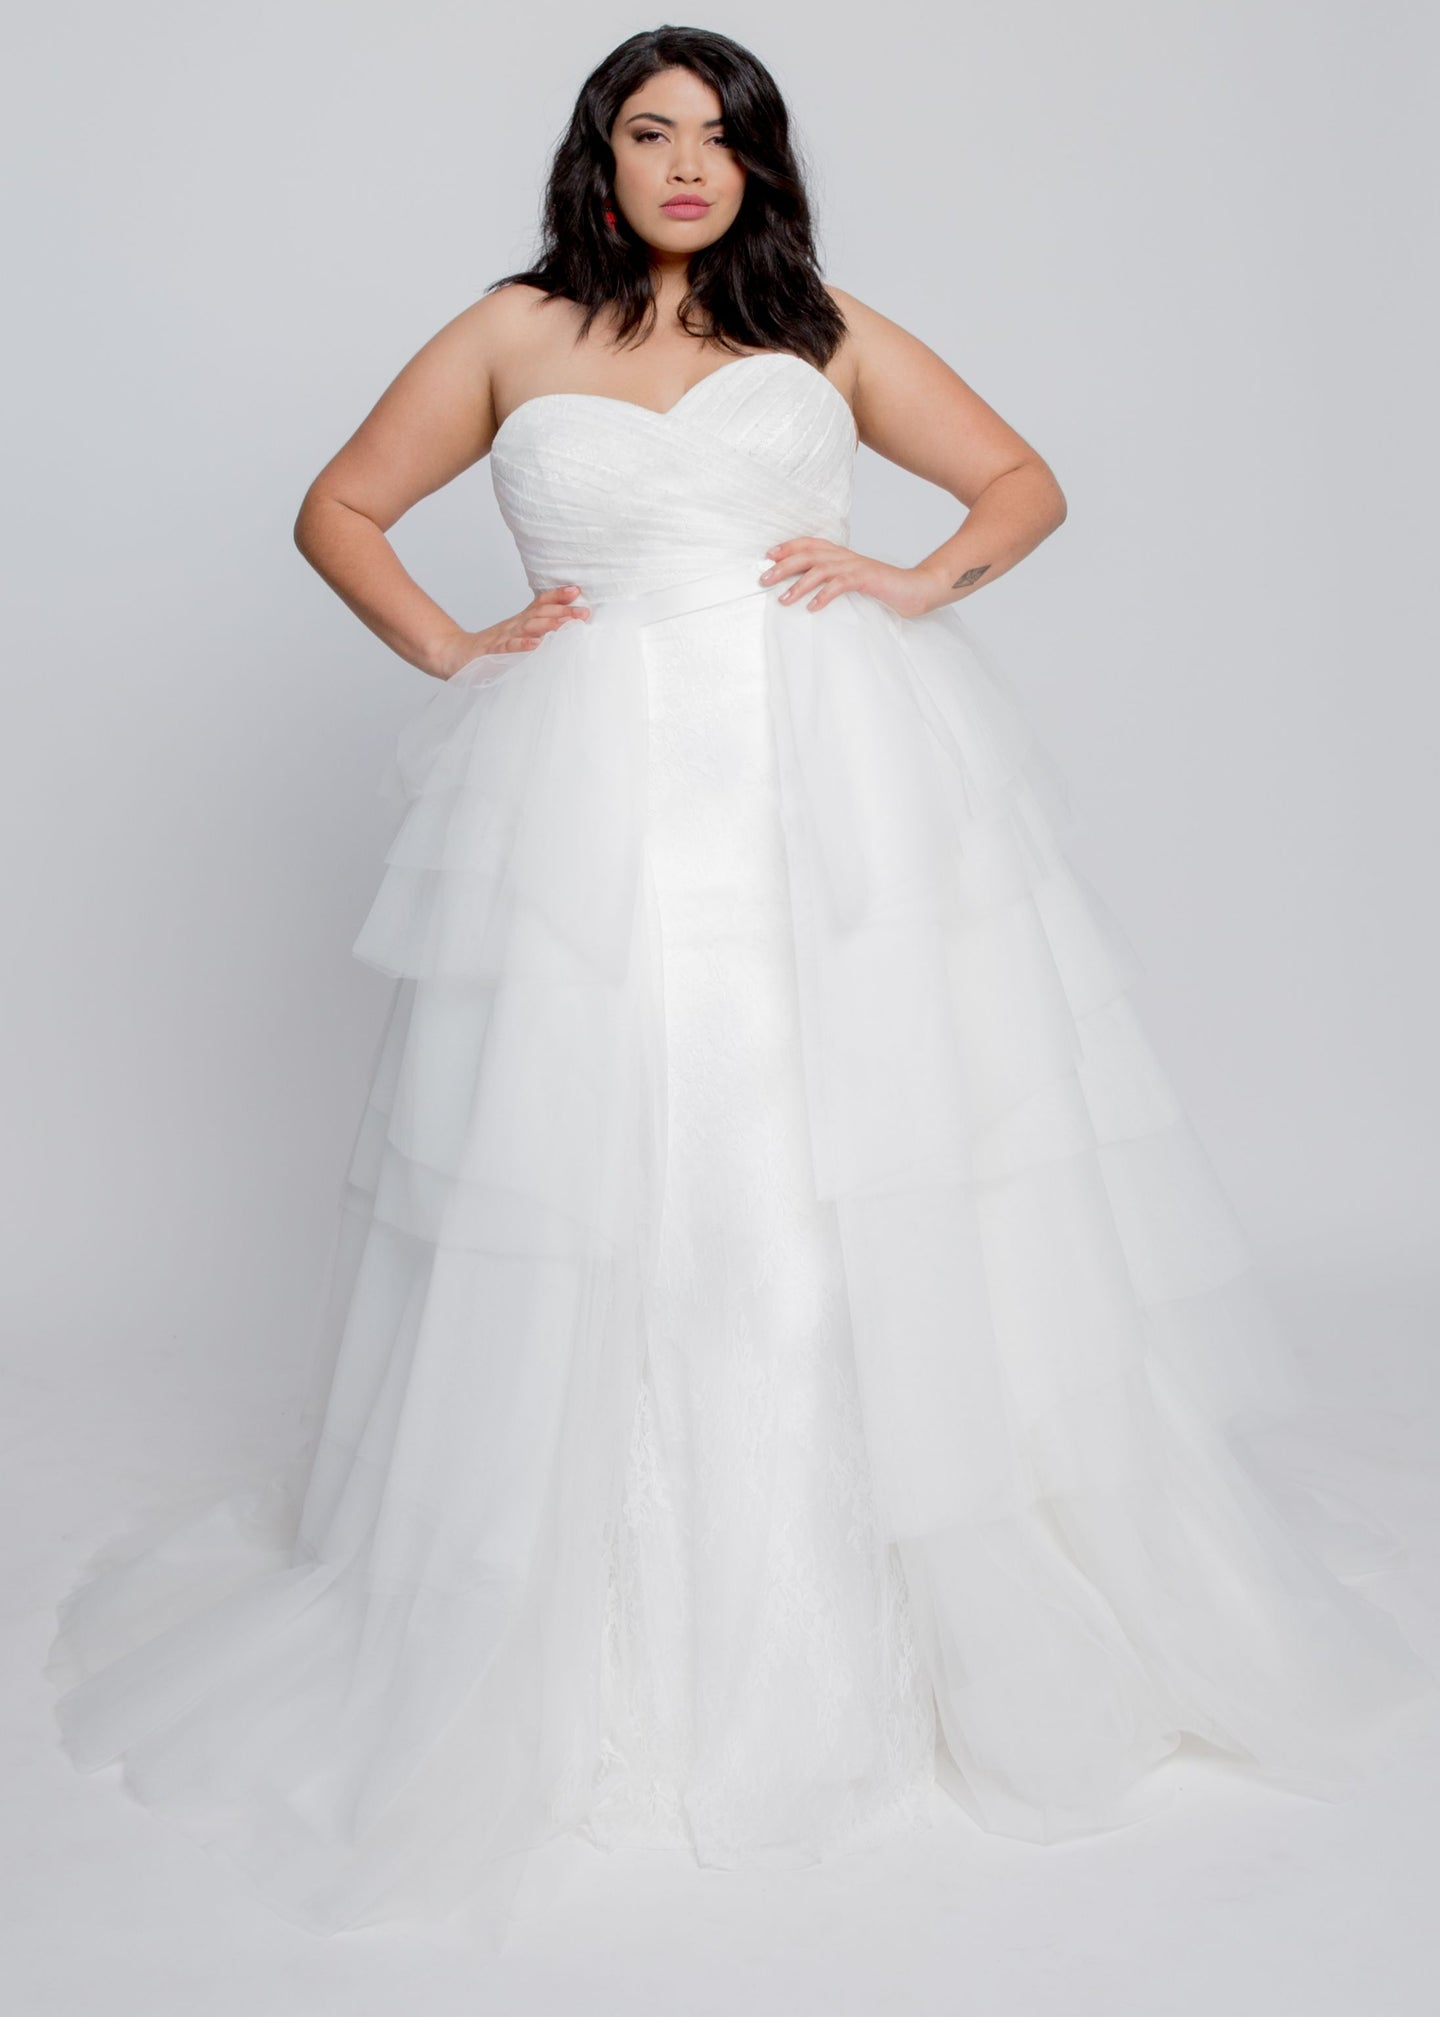 Gorgeous bridal gowns for all body shapes: plus size, curvy, or petite brides. Try on our wedding dresses at home. Size 0-30. Comfortable. Convenient. Fun. Lace or satin. Mermaid or A-line.  Make any dress into a ball gown silhouette with layers of soft tulle in the Pimerly Overskirt. Easily attaches in the front and open enough to show off your favorite gown. Features a sweep train and pairs well with a line or trumpet styles.